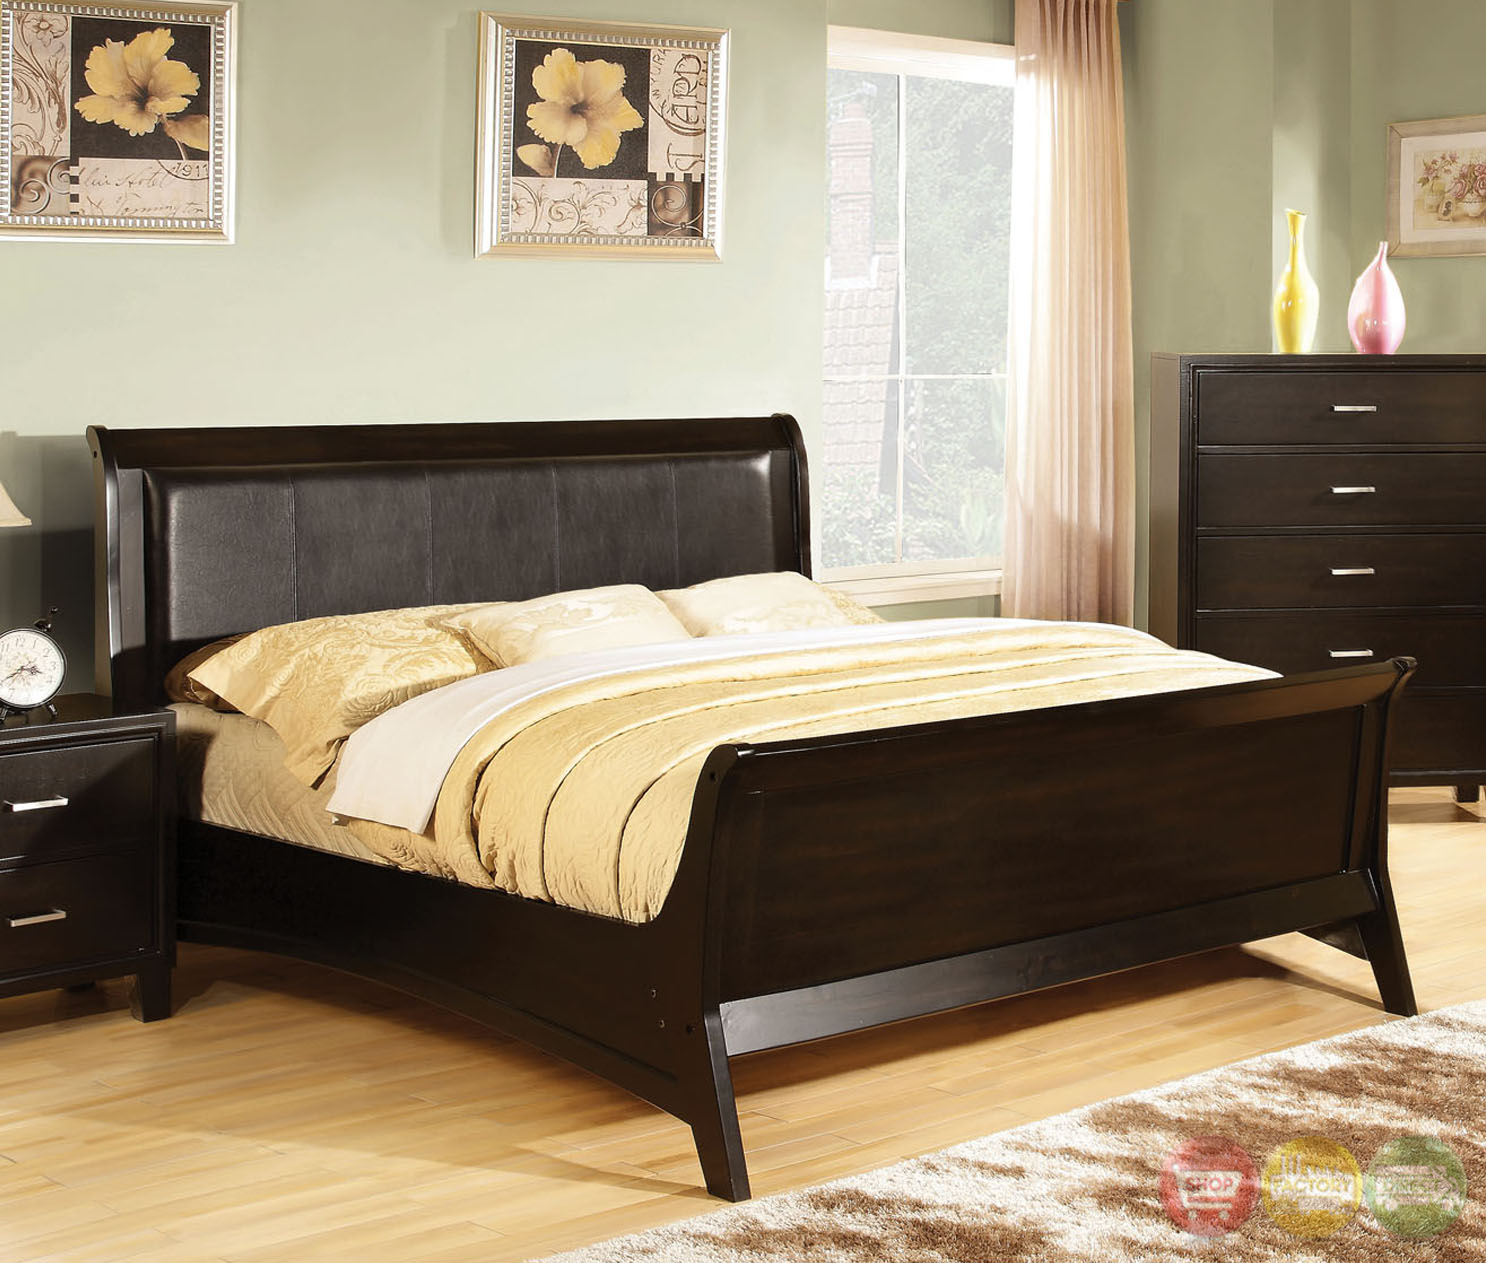 Darien Contemporary Espresso Sleigh Bedroom Set with Leatherette Headboard CM